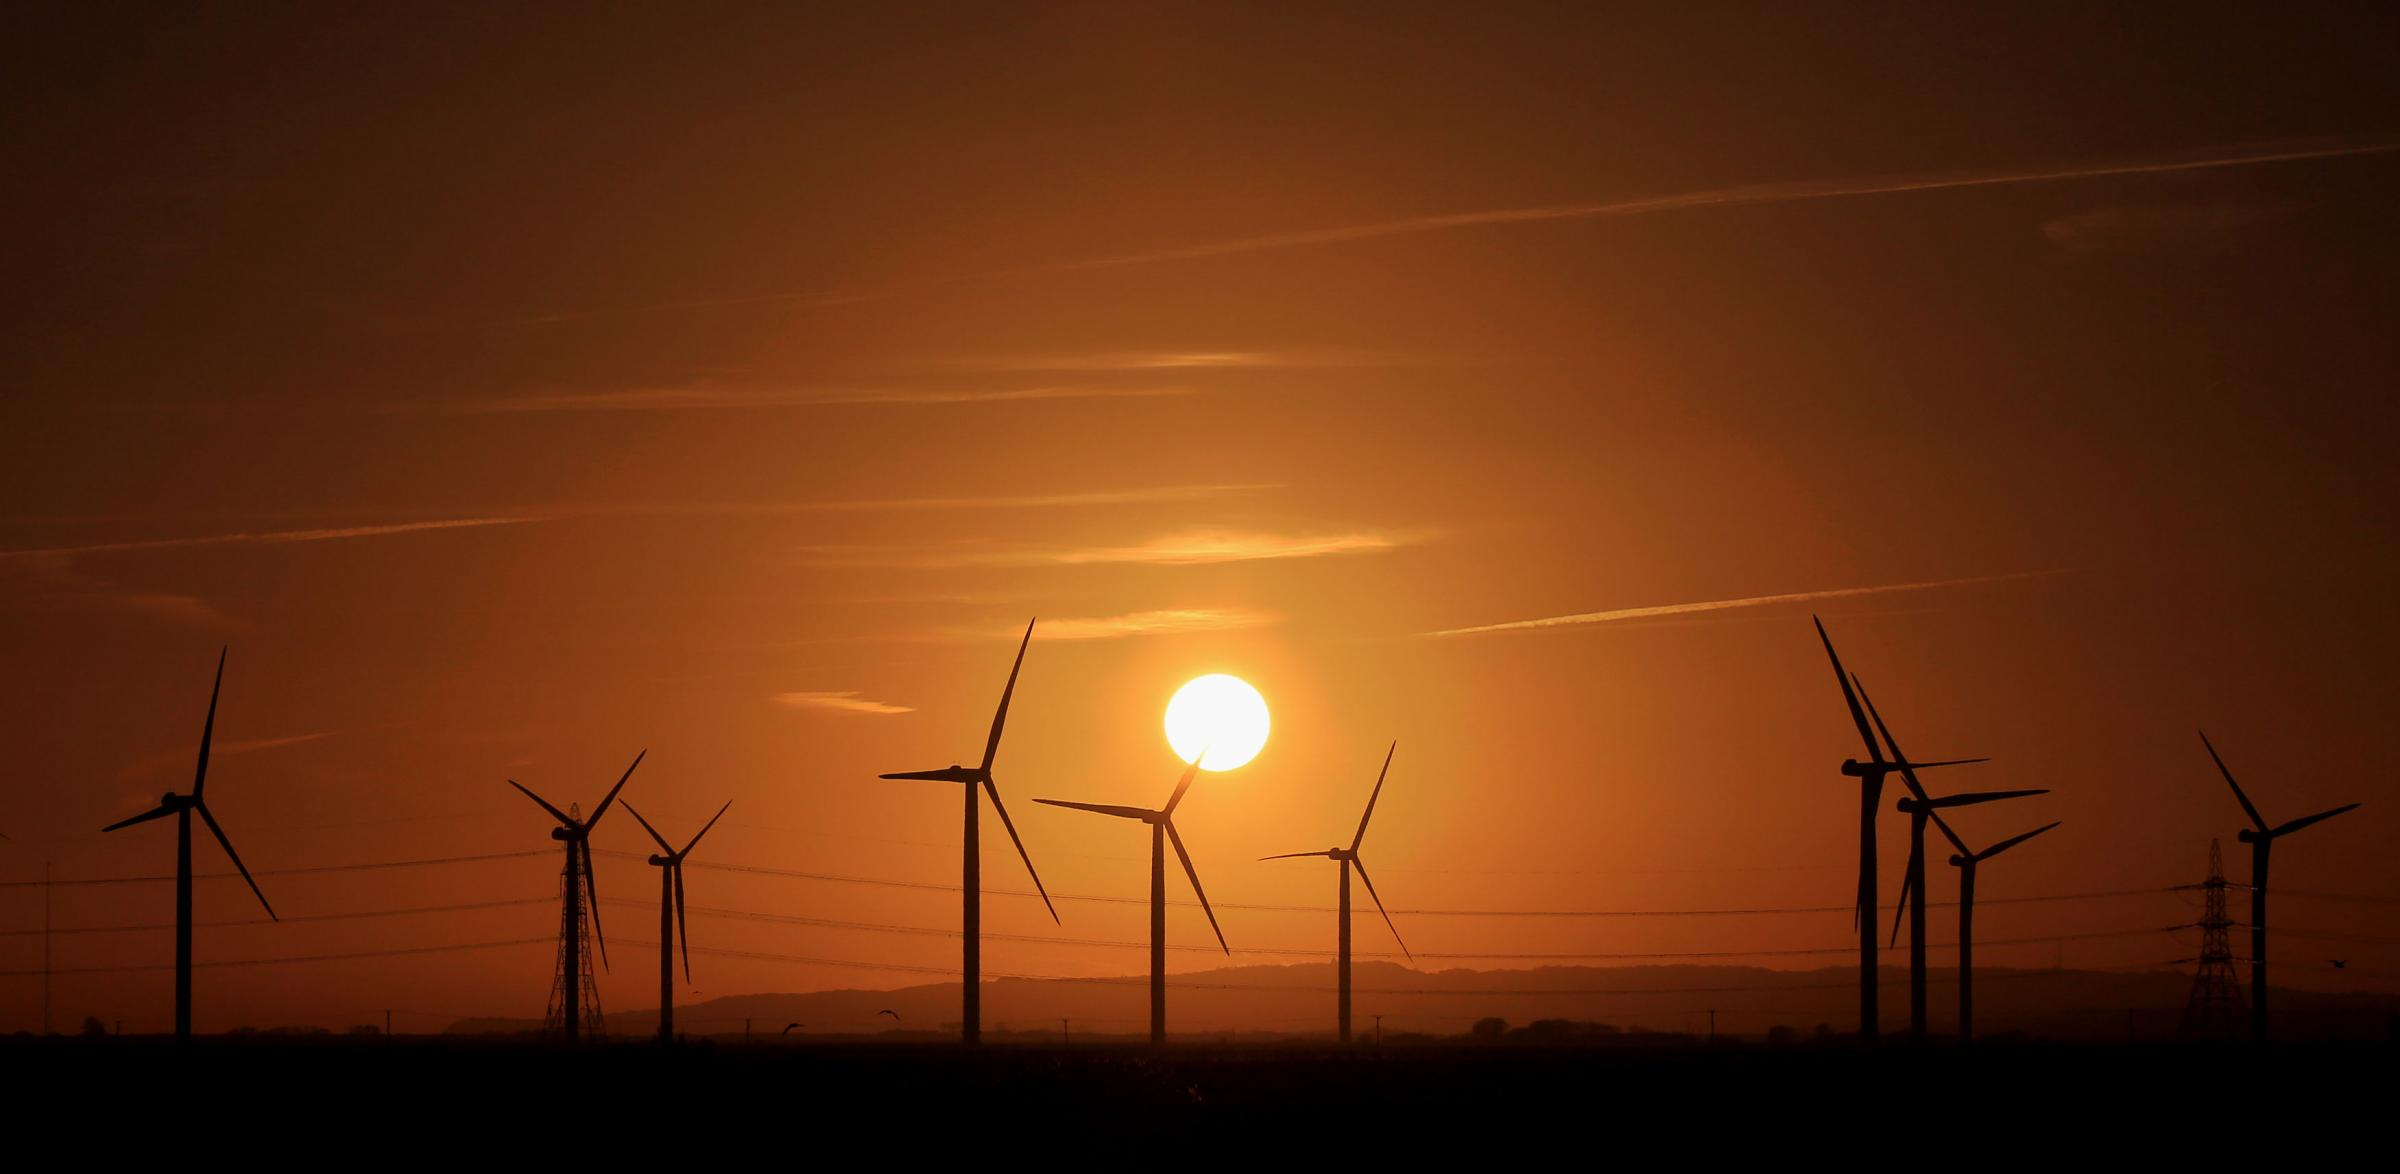 Within the United Kingdom, wind power is the largest source of renewable electricity. Garath Fuller/PA Wire